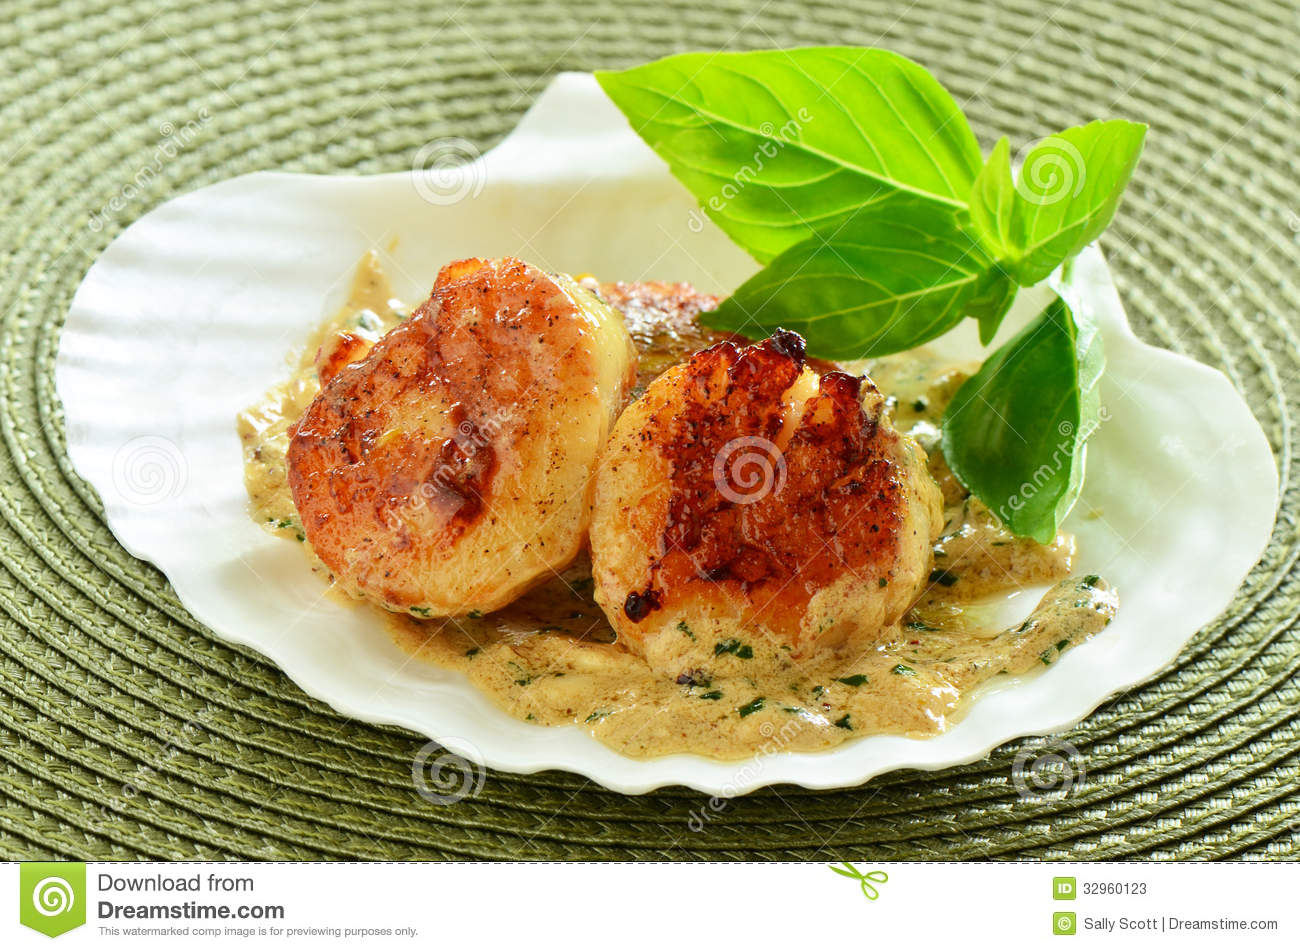 Seared Scallops With Herb-Butter Pan Sauce Recipe — Dishmaps